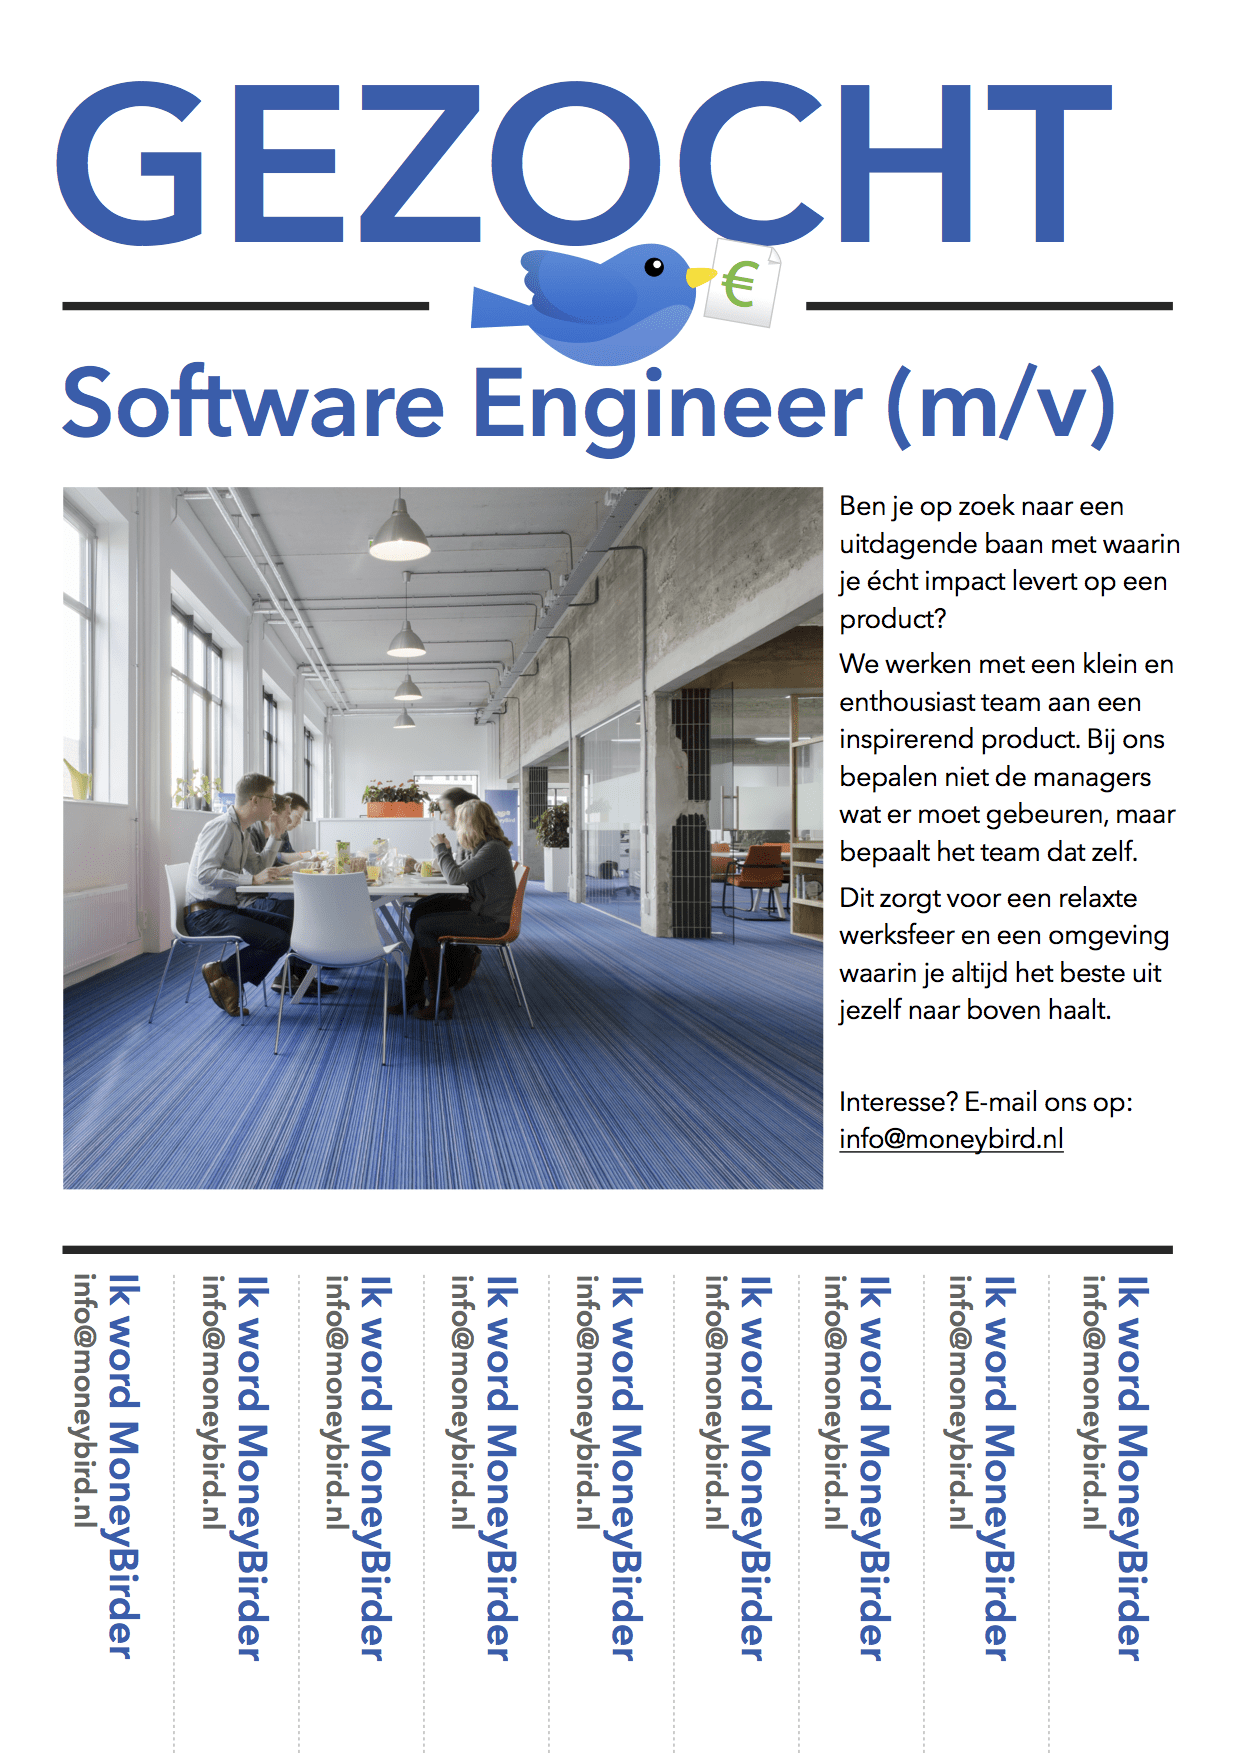 Gezocht: Software Engineer